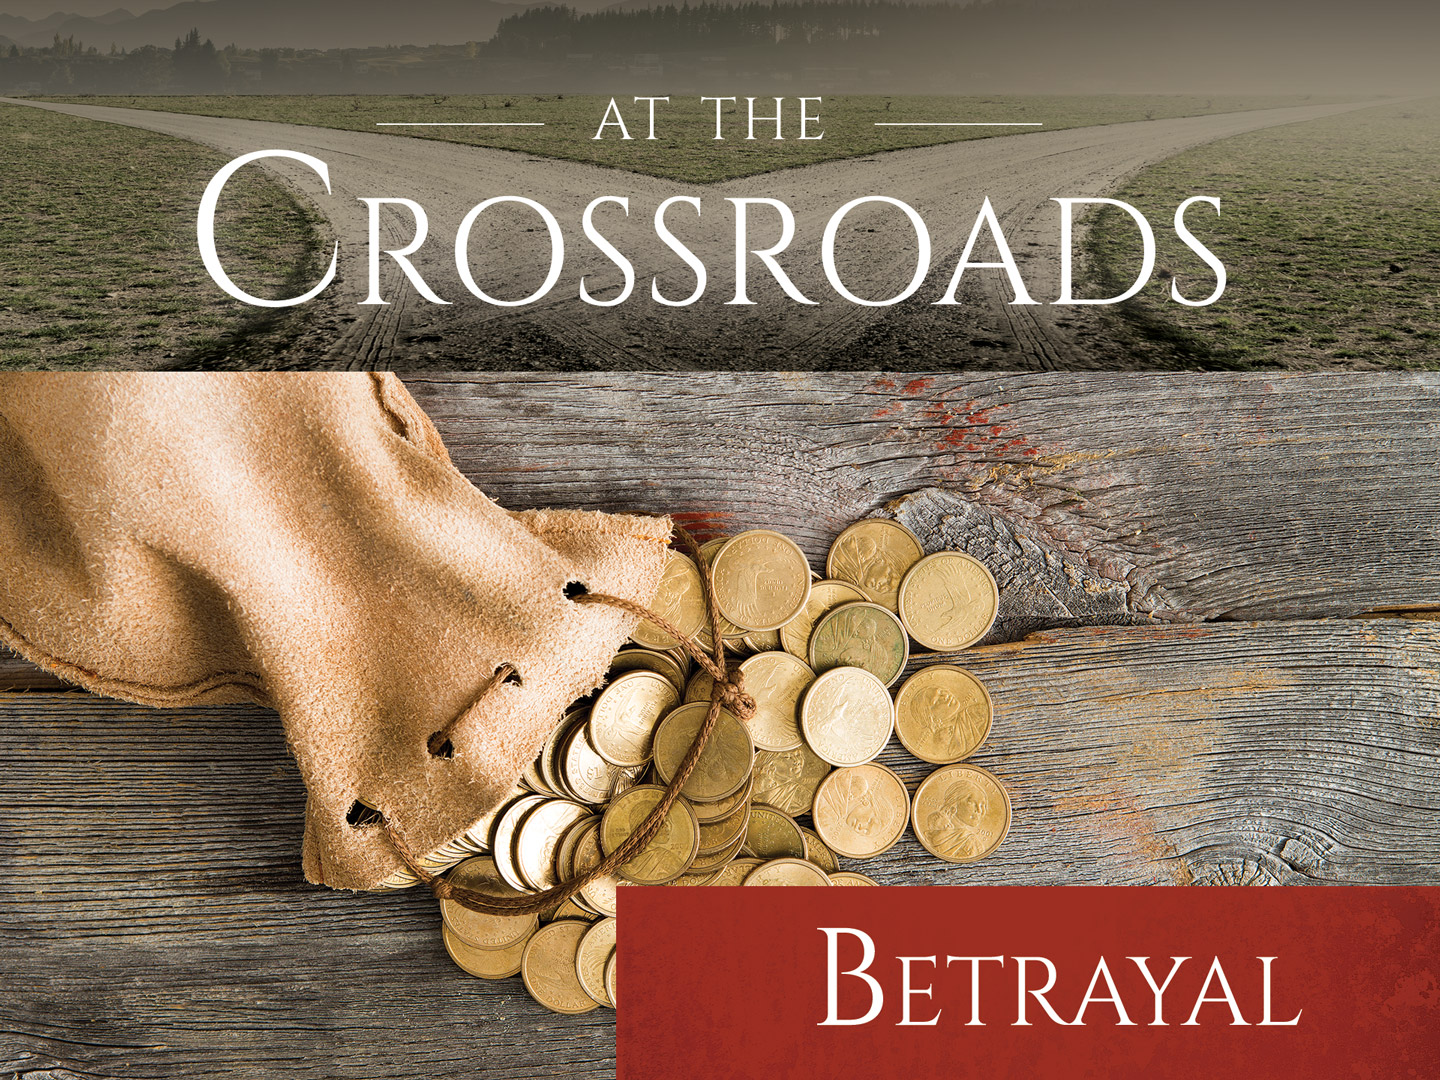 At the Crossroads…Betrayal